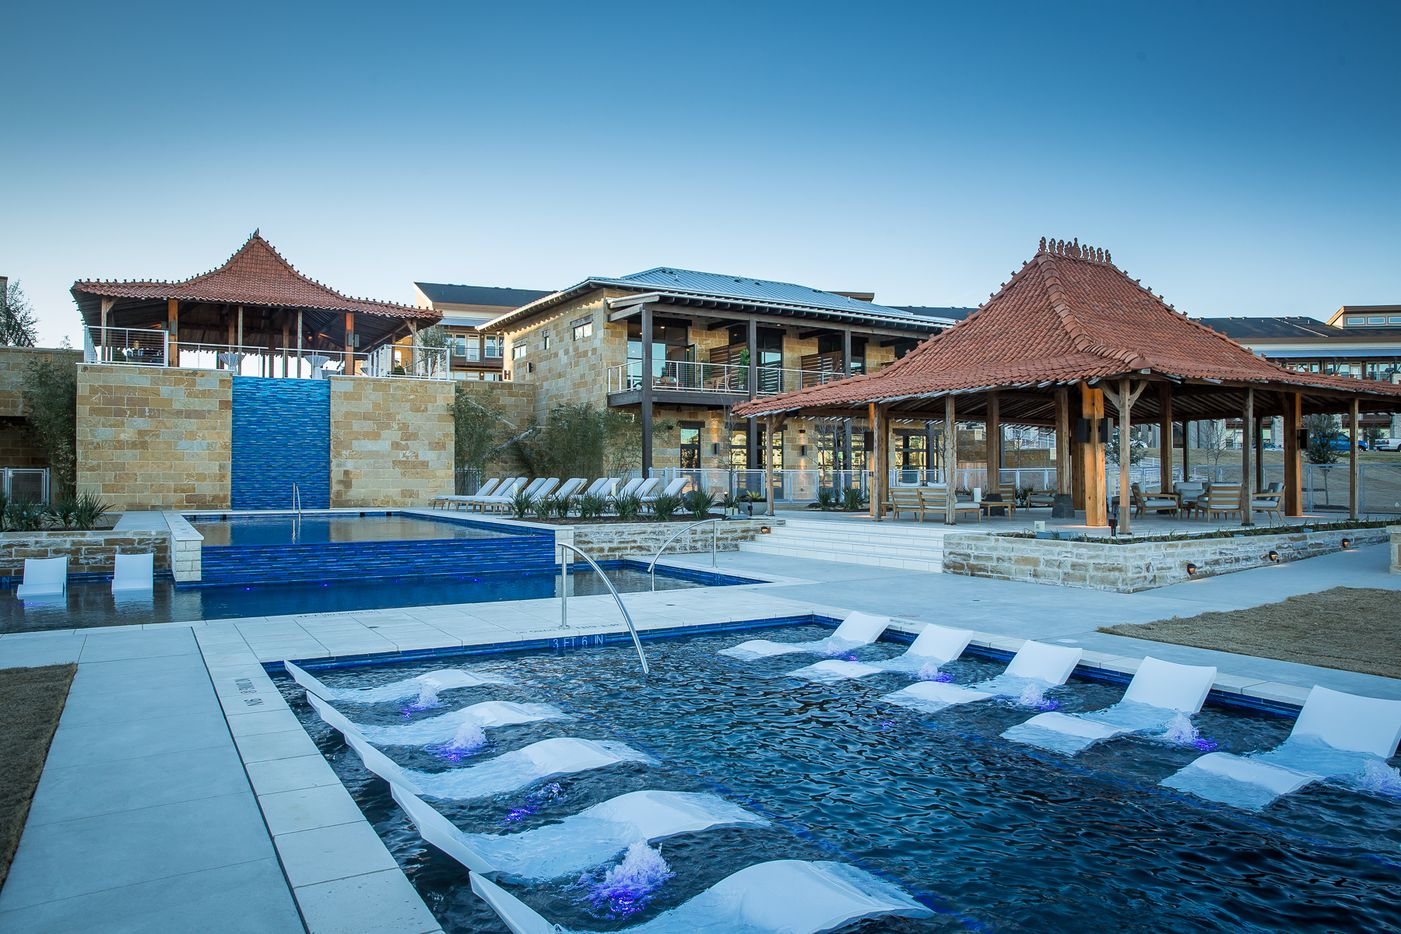 The new Hudson apartments at Austin Ranch have a resort style pool with pavilions that were brought from Indonesia.